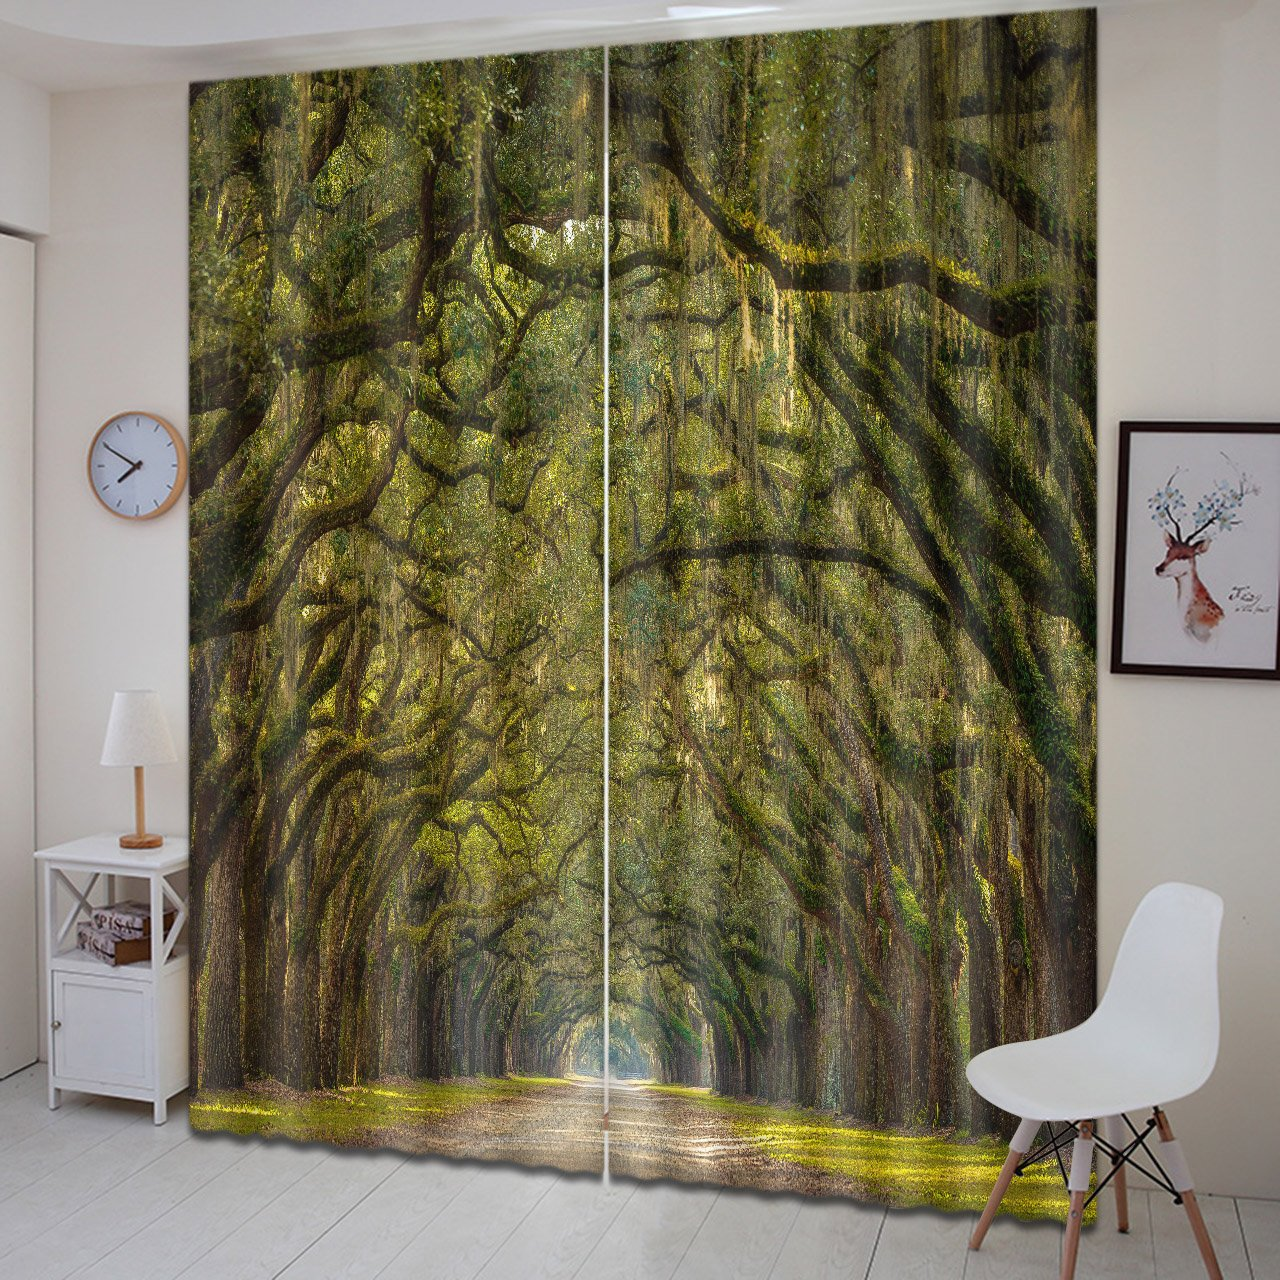 LB Teen Kids Room Decor Forest Scenery Curtains,Green Tree Gallery 3D  Effect Print Window Treatment Living Room Bedroom Window Curtains 2 Panels  Set,60W x ...